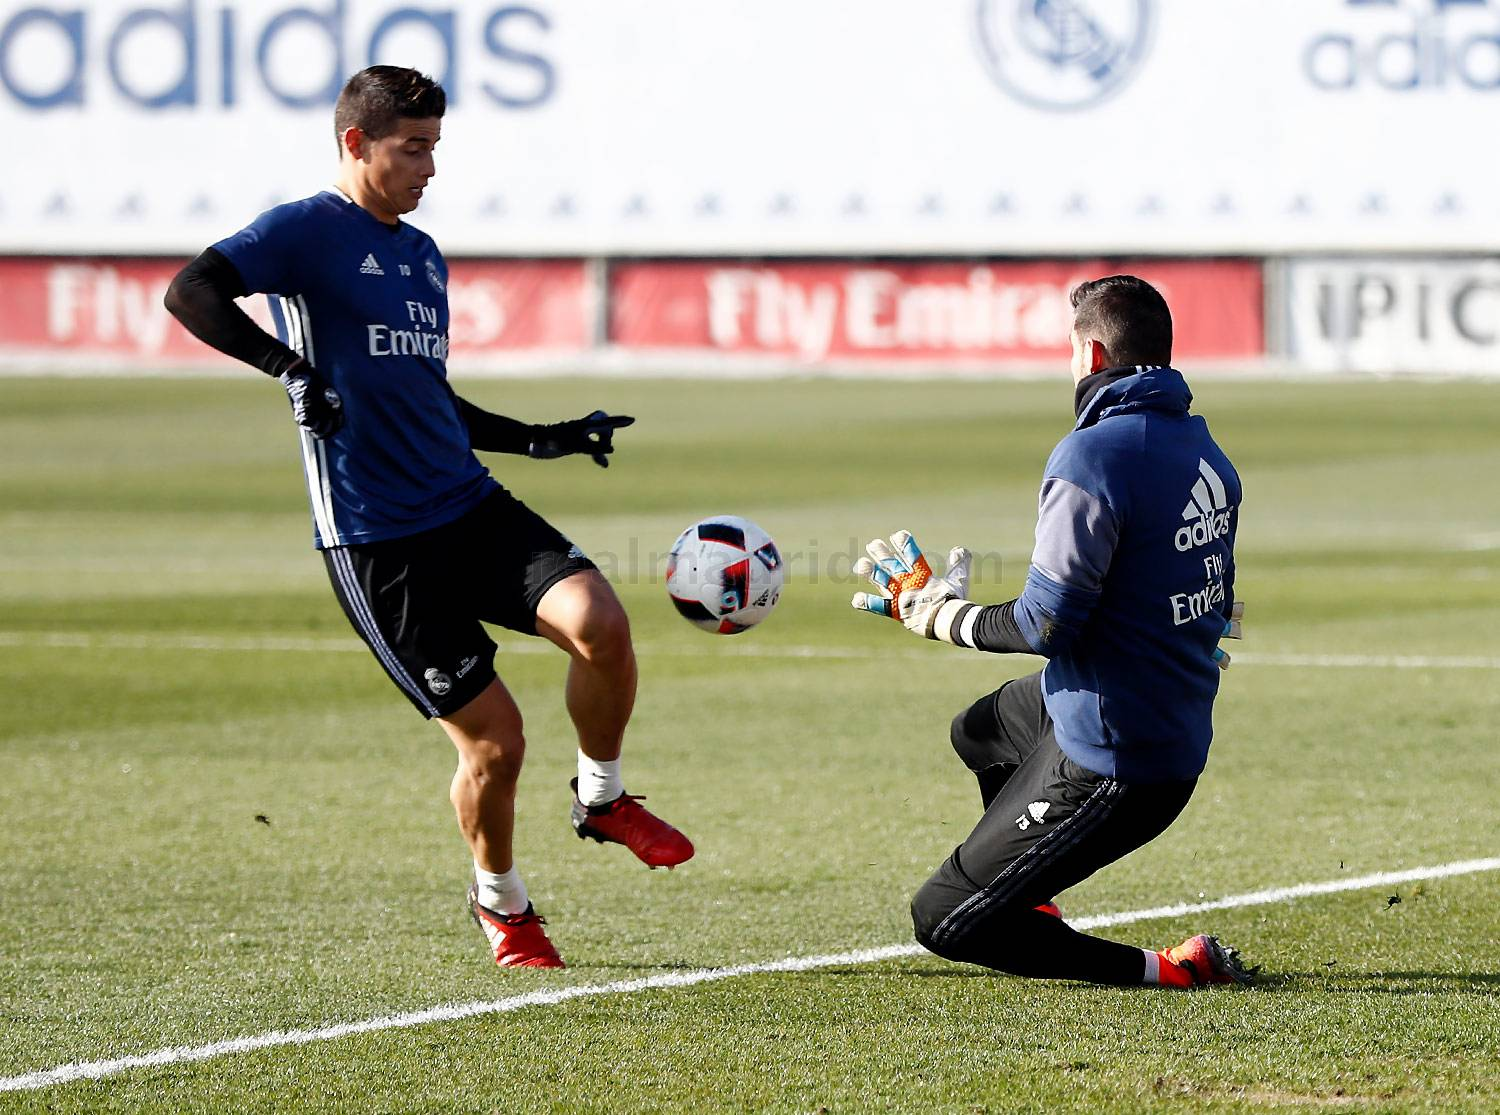 Real Madrid - Entrenamiento del Real Madrid - 03-01-2017